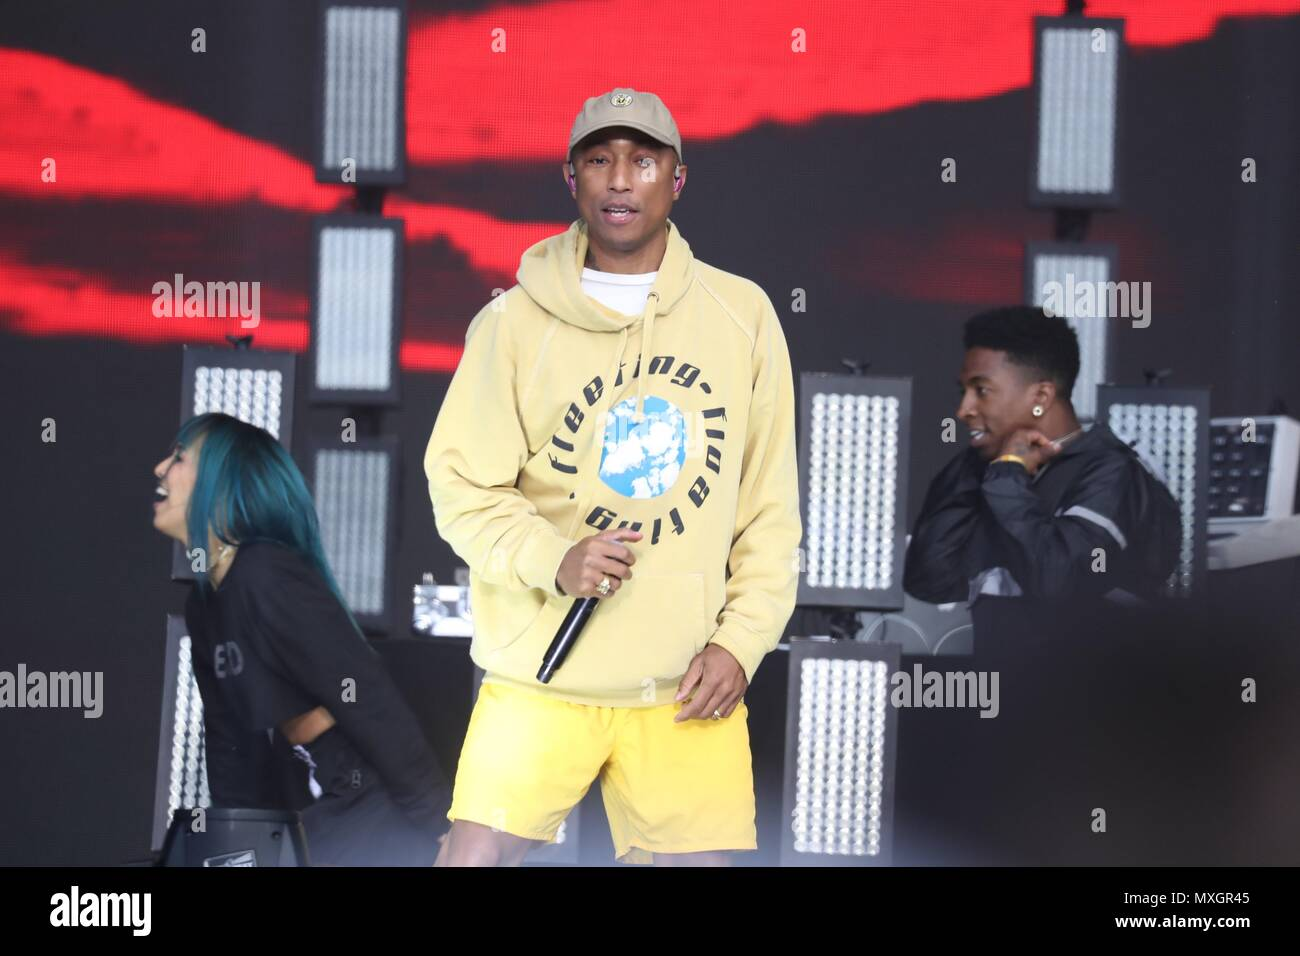 e8c19570f90d7 Pharrell Williams of N.E.R.D. on stage for 2018 Governors Ball Music  Festival - SUN